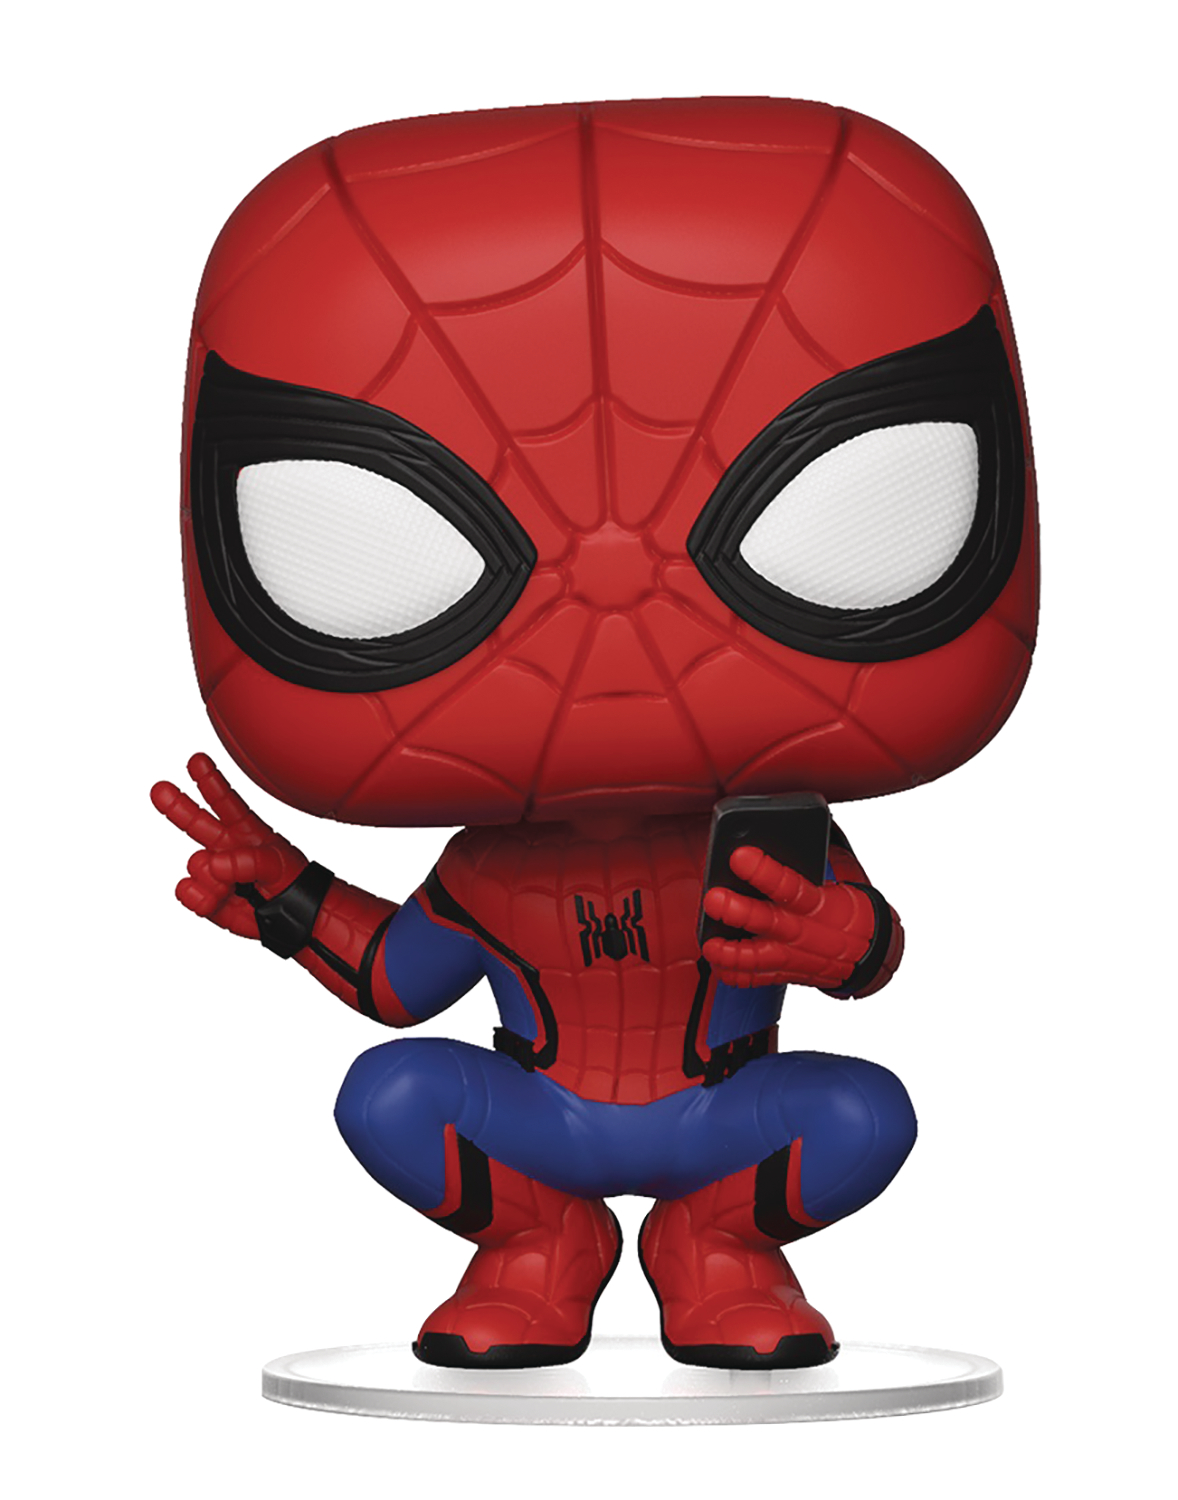 POP MARVEL SPIDER-MAN FAR FROM HOME HERO SUIT VIN FIG